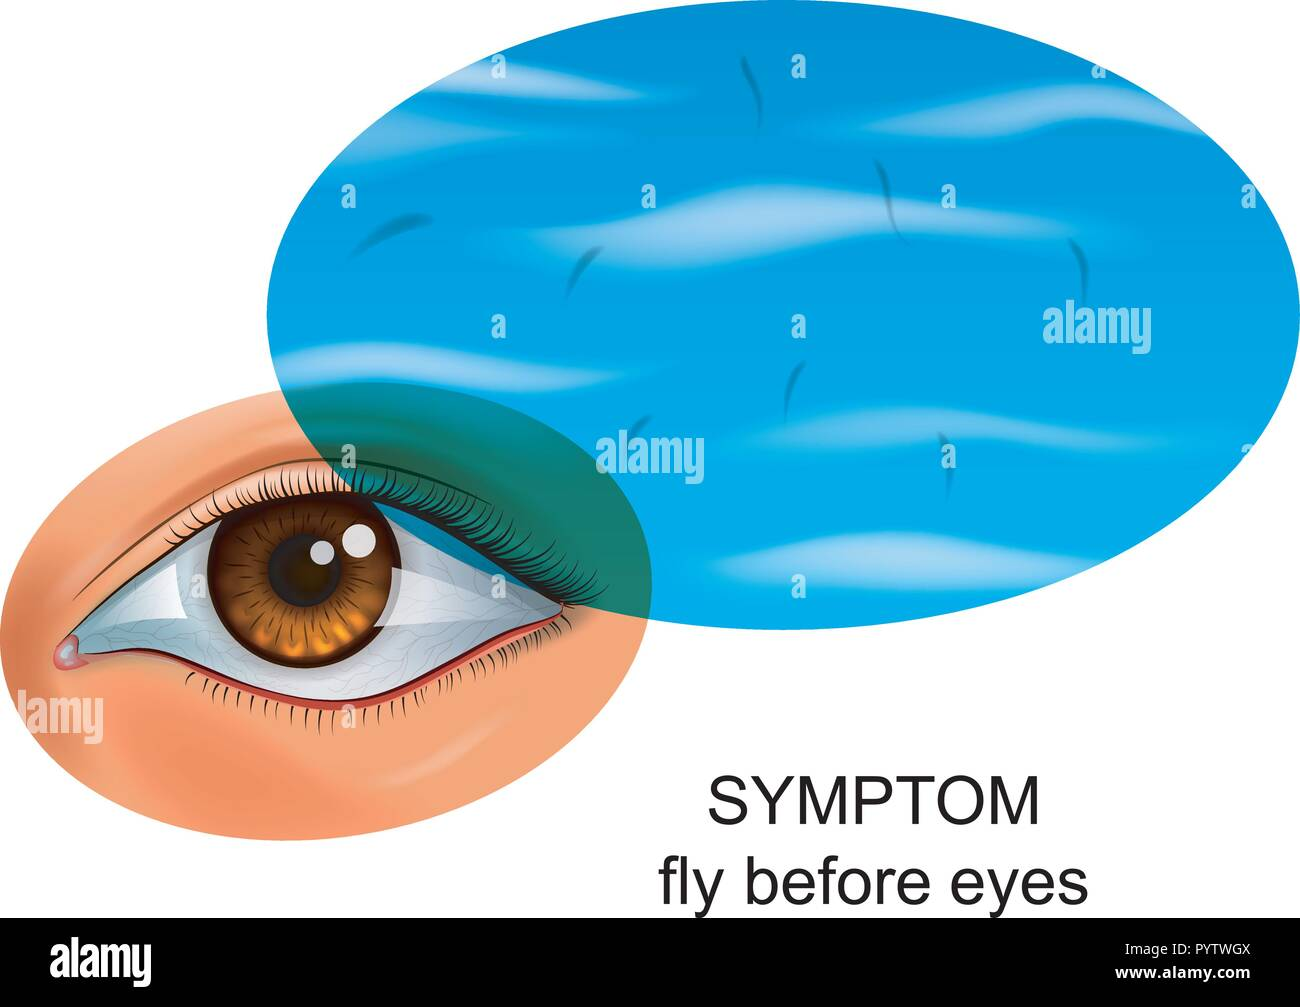 vector illustration of a fly in front of eyes. symptom of eye diseases - Stock Image